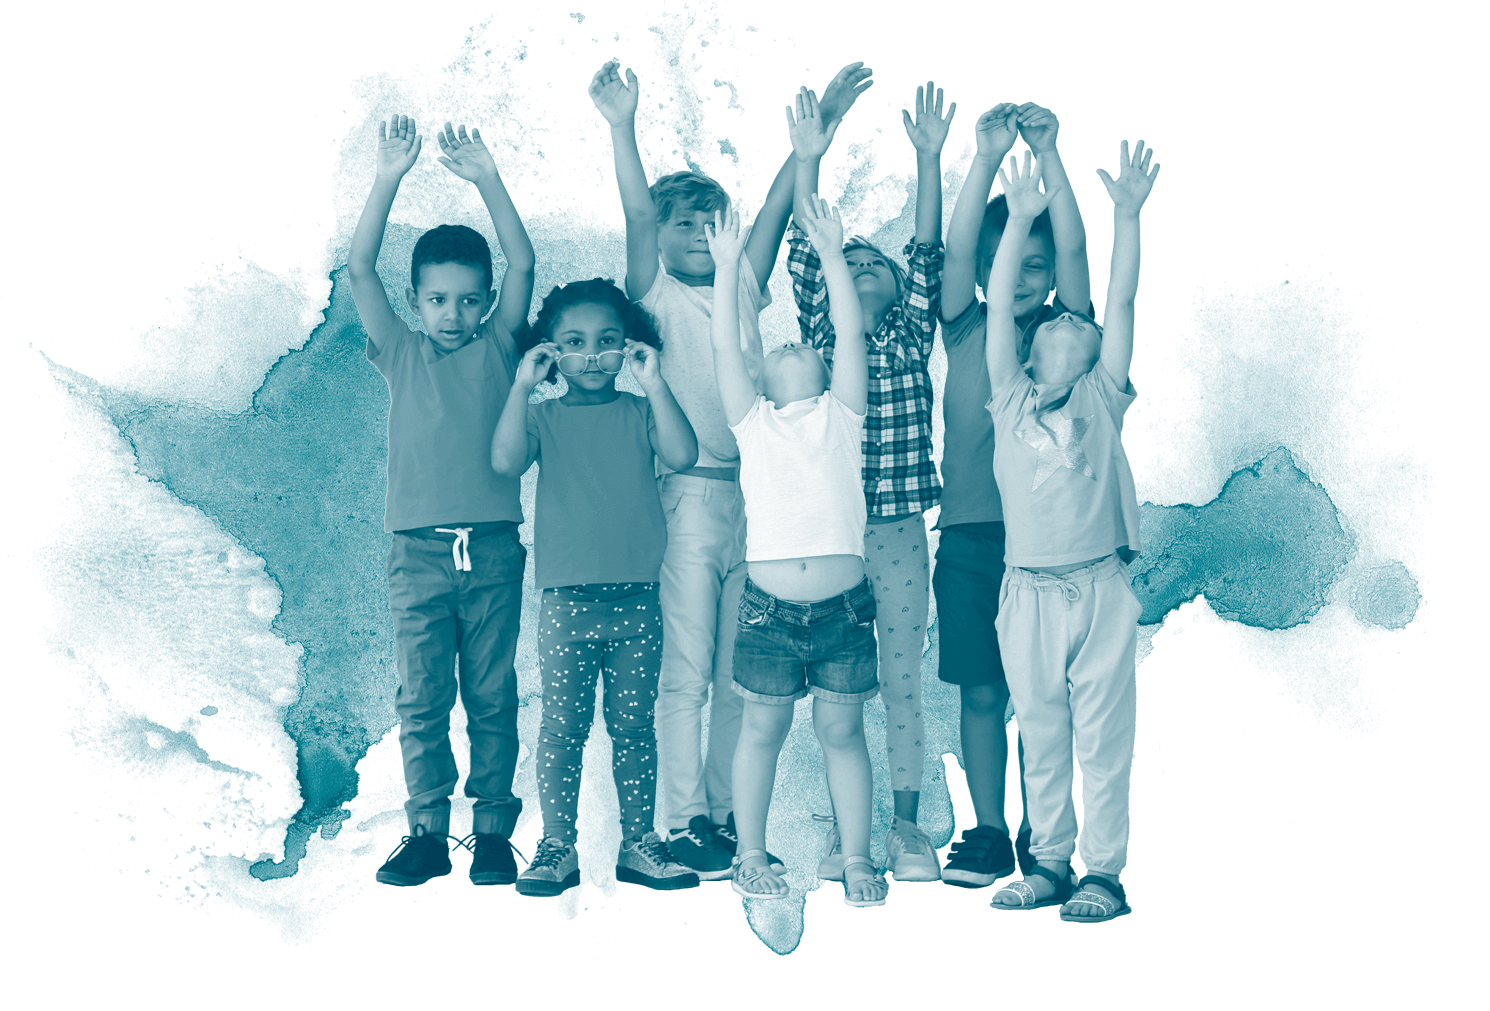 Group of children with hands in the air